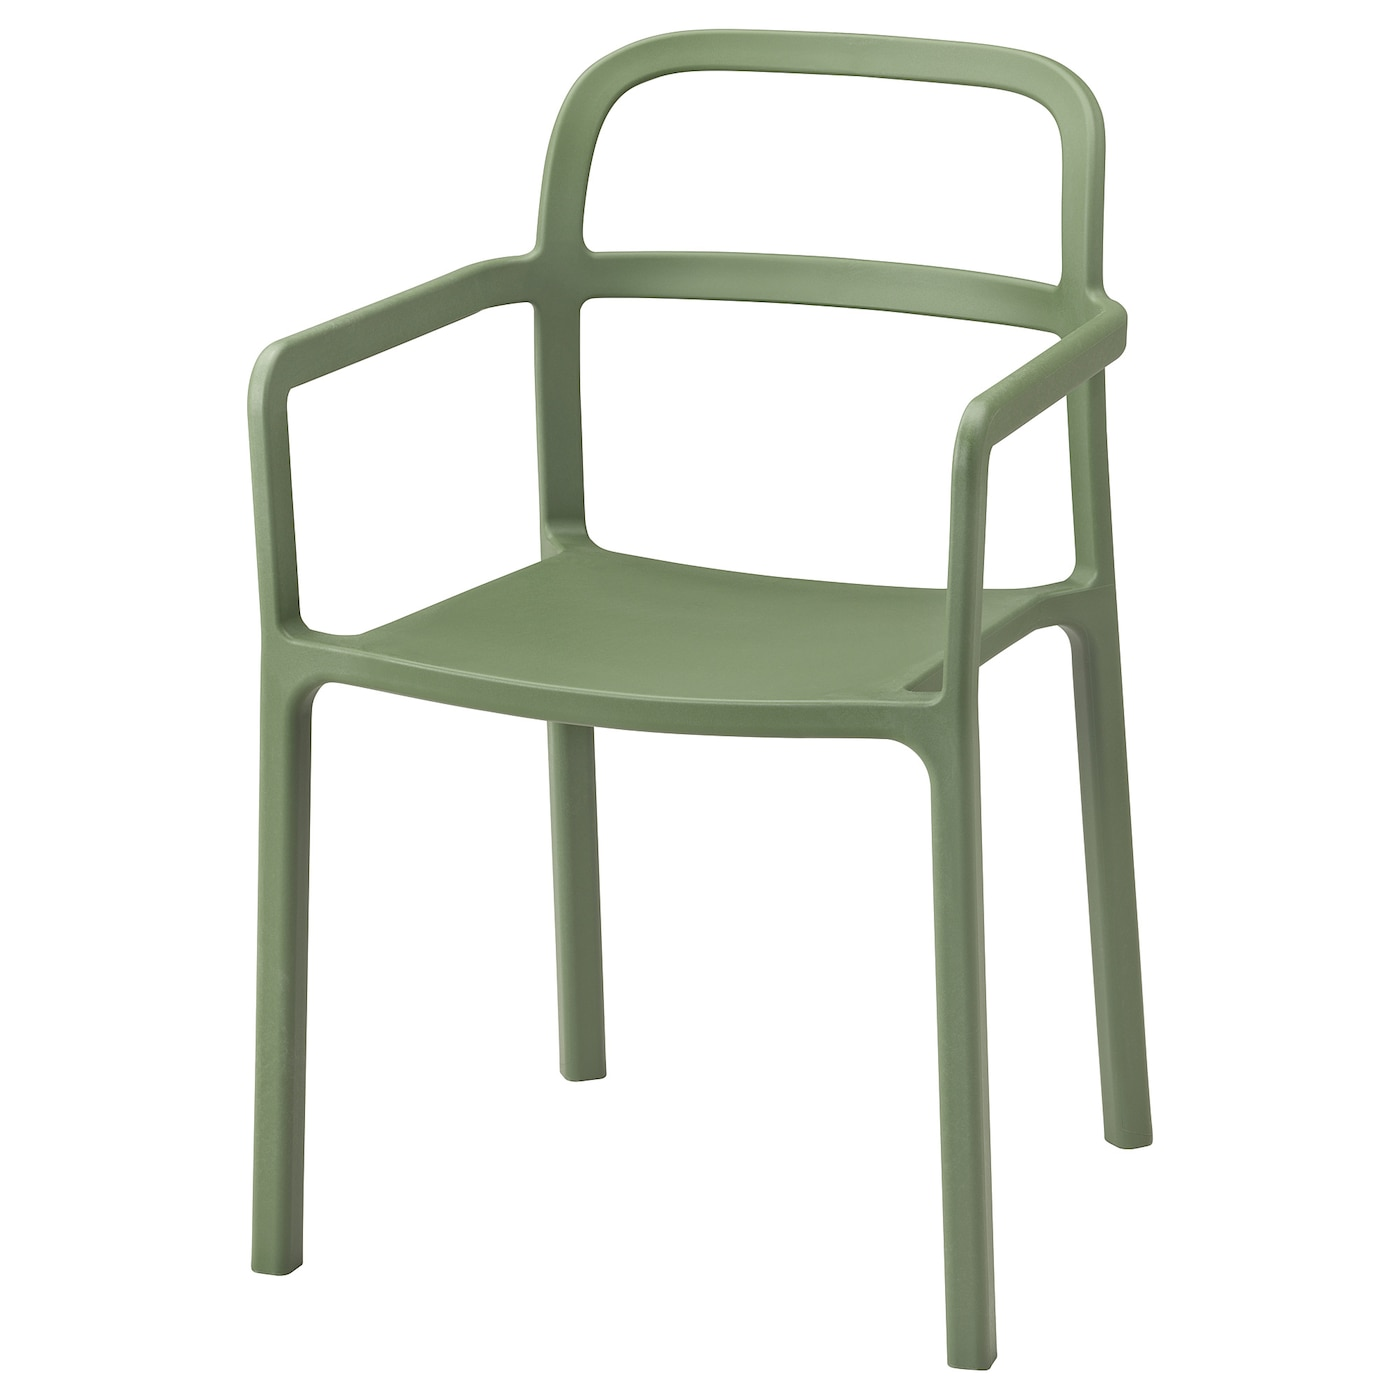 IKEA YPPERLIG Chair With Armrests, In/outdoor Lightweight, Easy To Lift And  Move